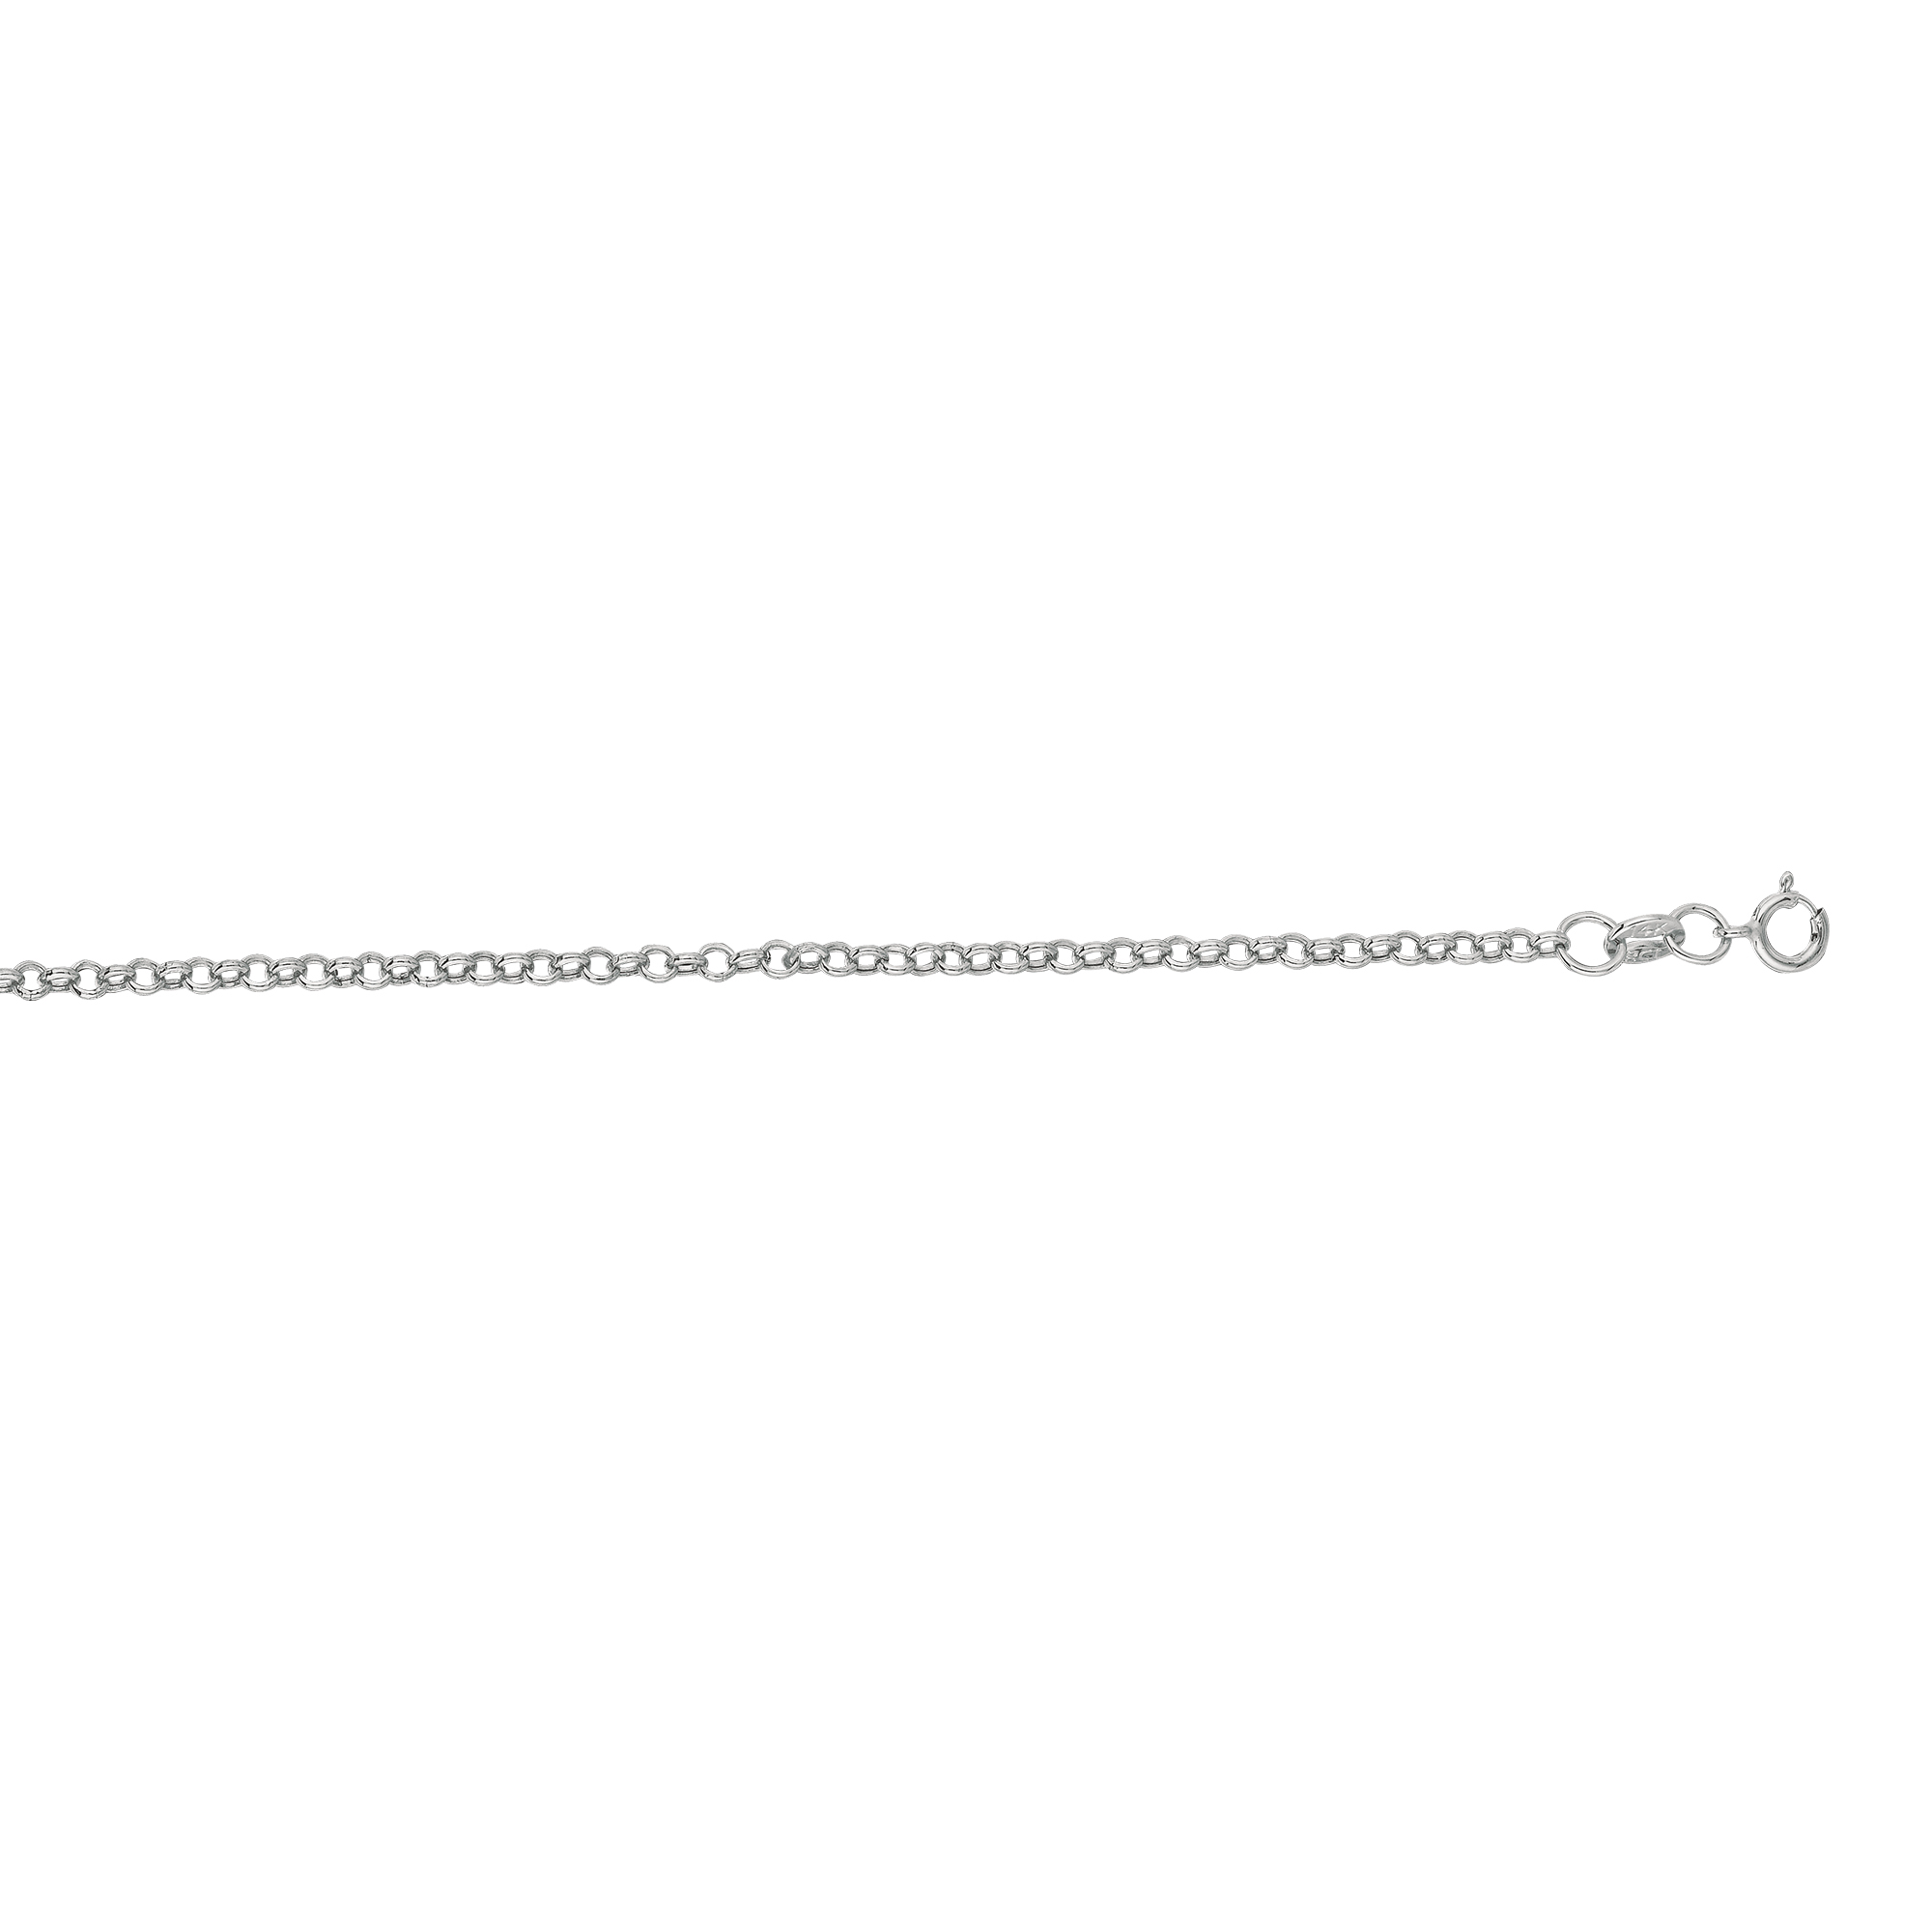 Hollow 14k Gold Rolo Chain For Men & Women 2mm Wide White Image